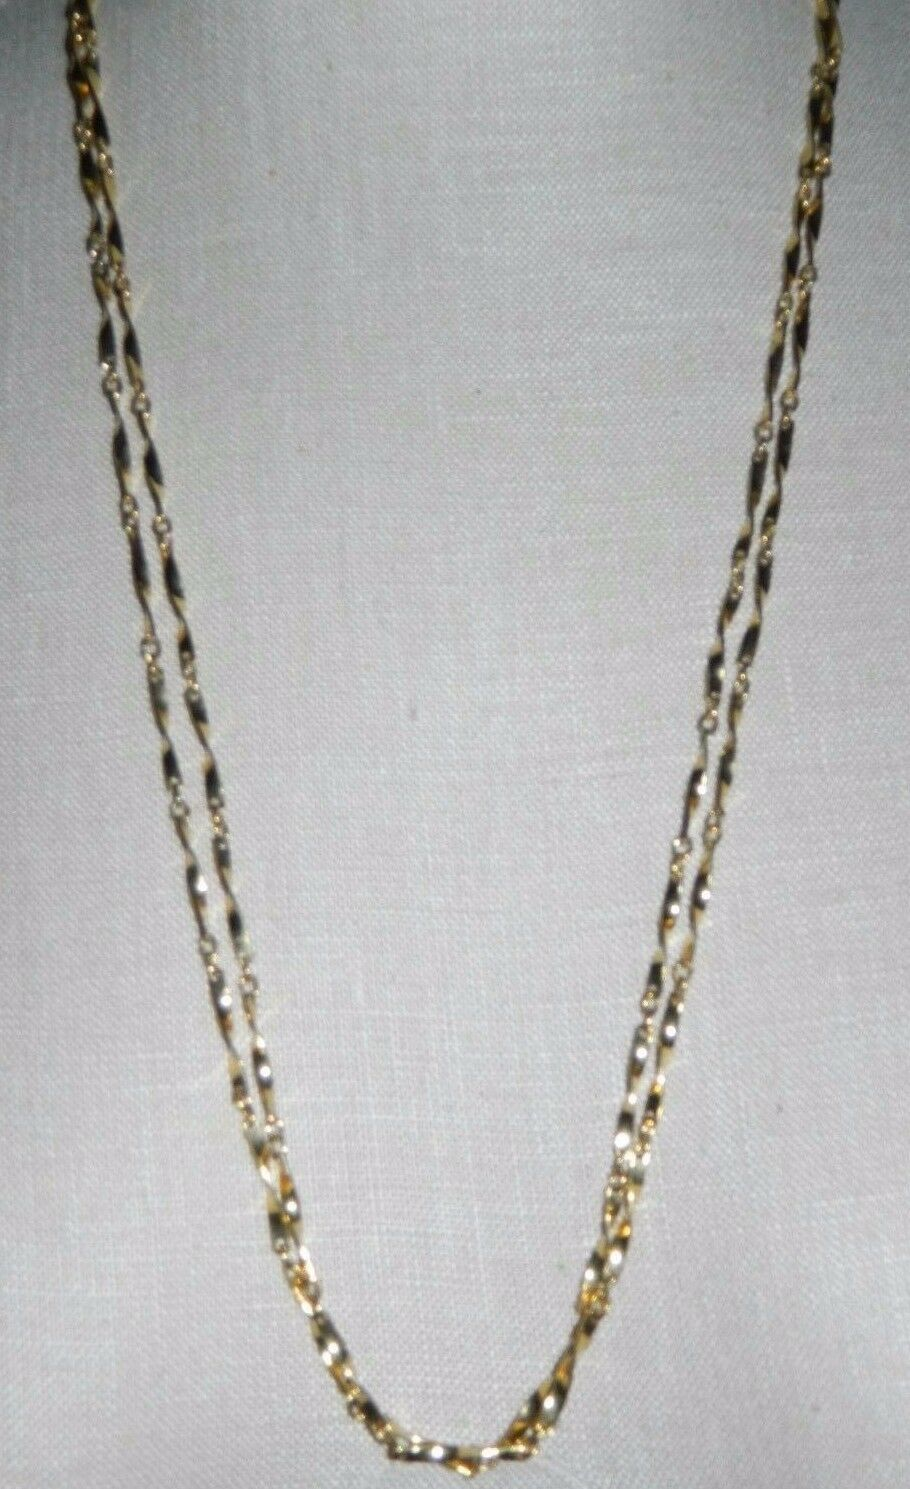 Primary image for VTG VENDOME Gold Tone Ex-Long Twist Link Chain Flapper Style Necklace 56""